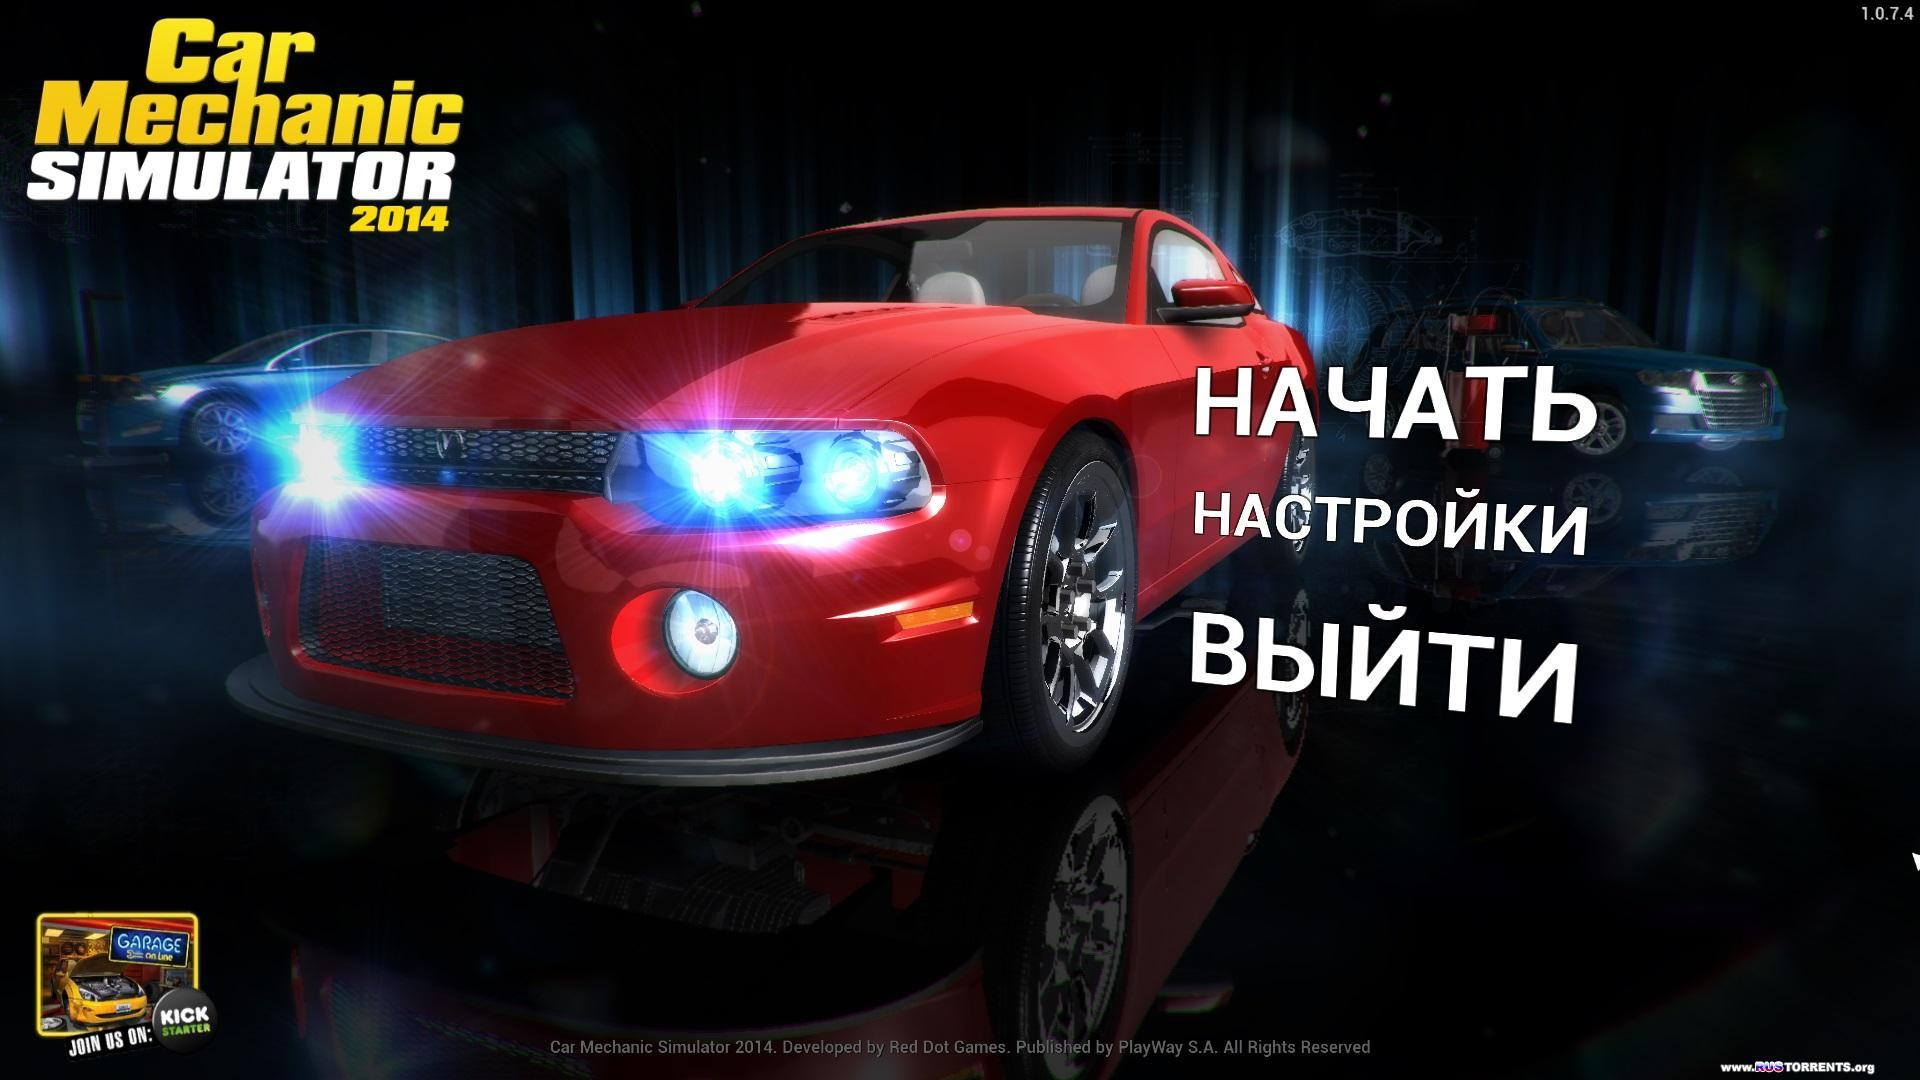 Car Mechanic Simulator 2014 [v 1.1.2.2] | PC | RePack от R.G. Steamgames